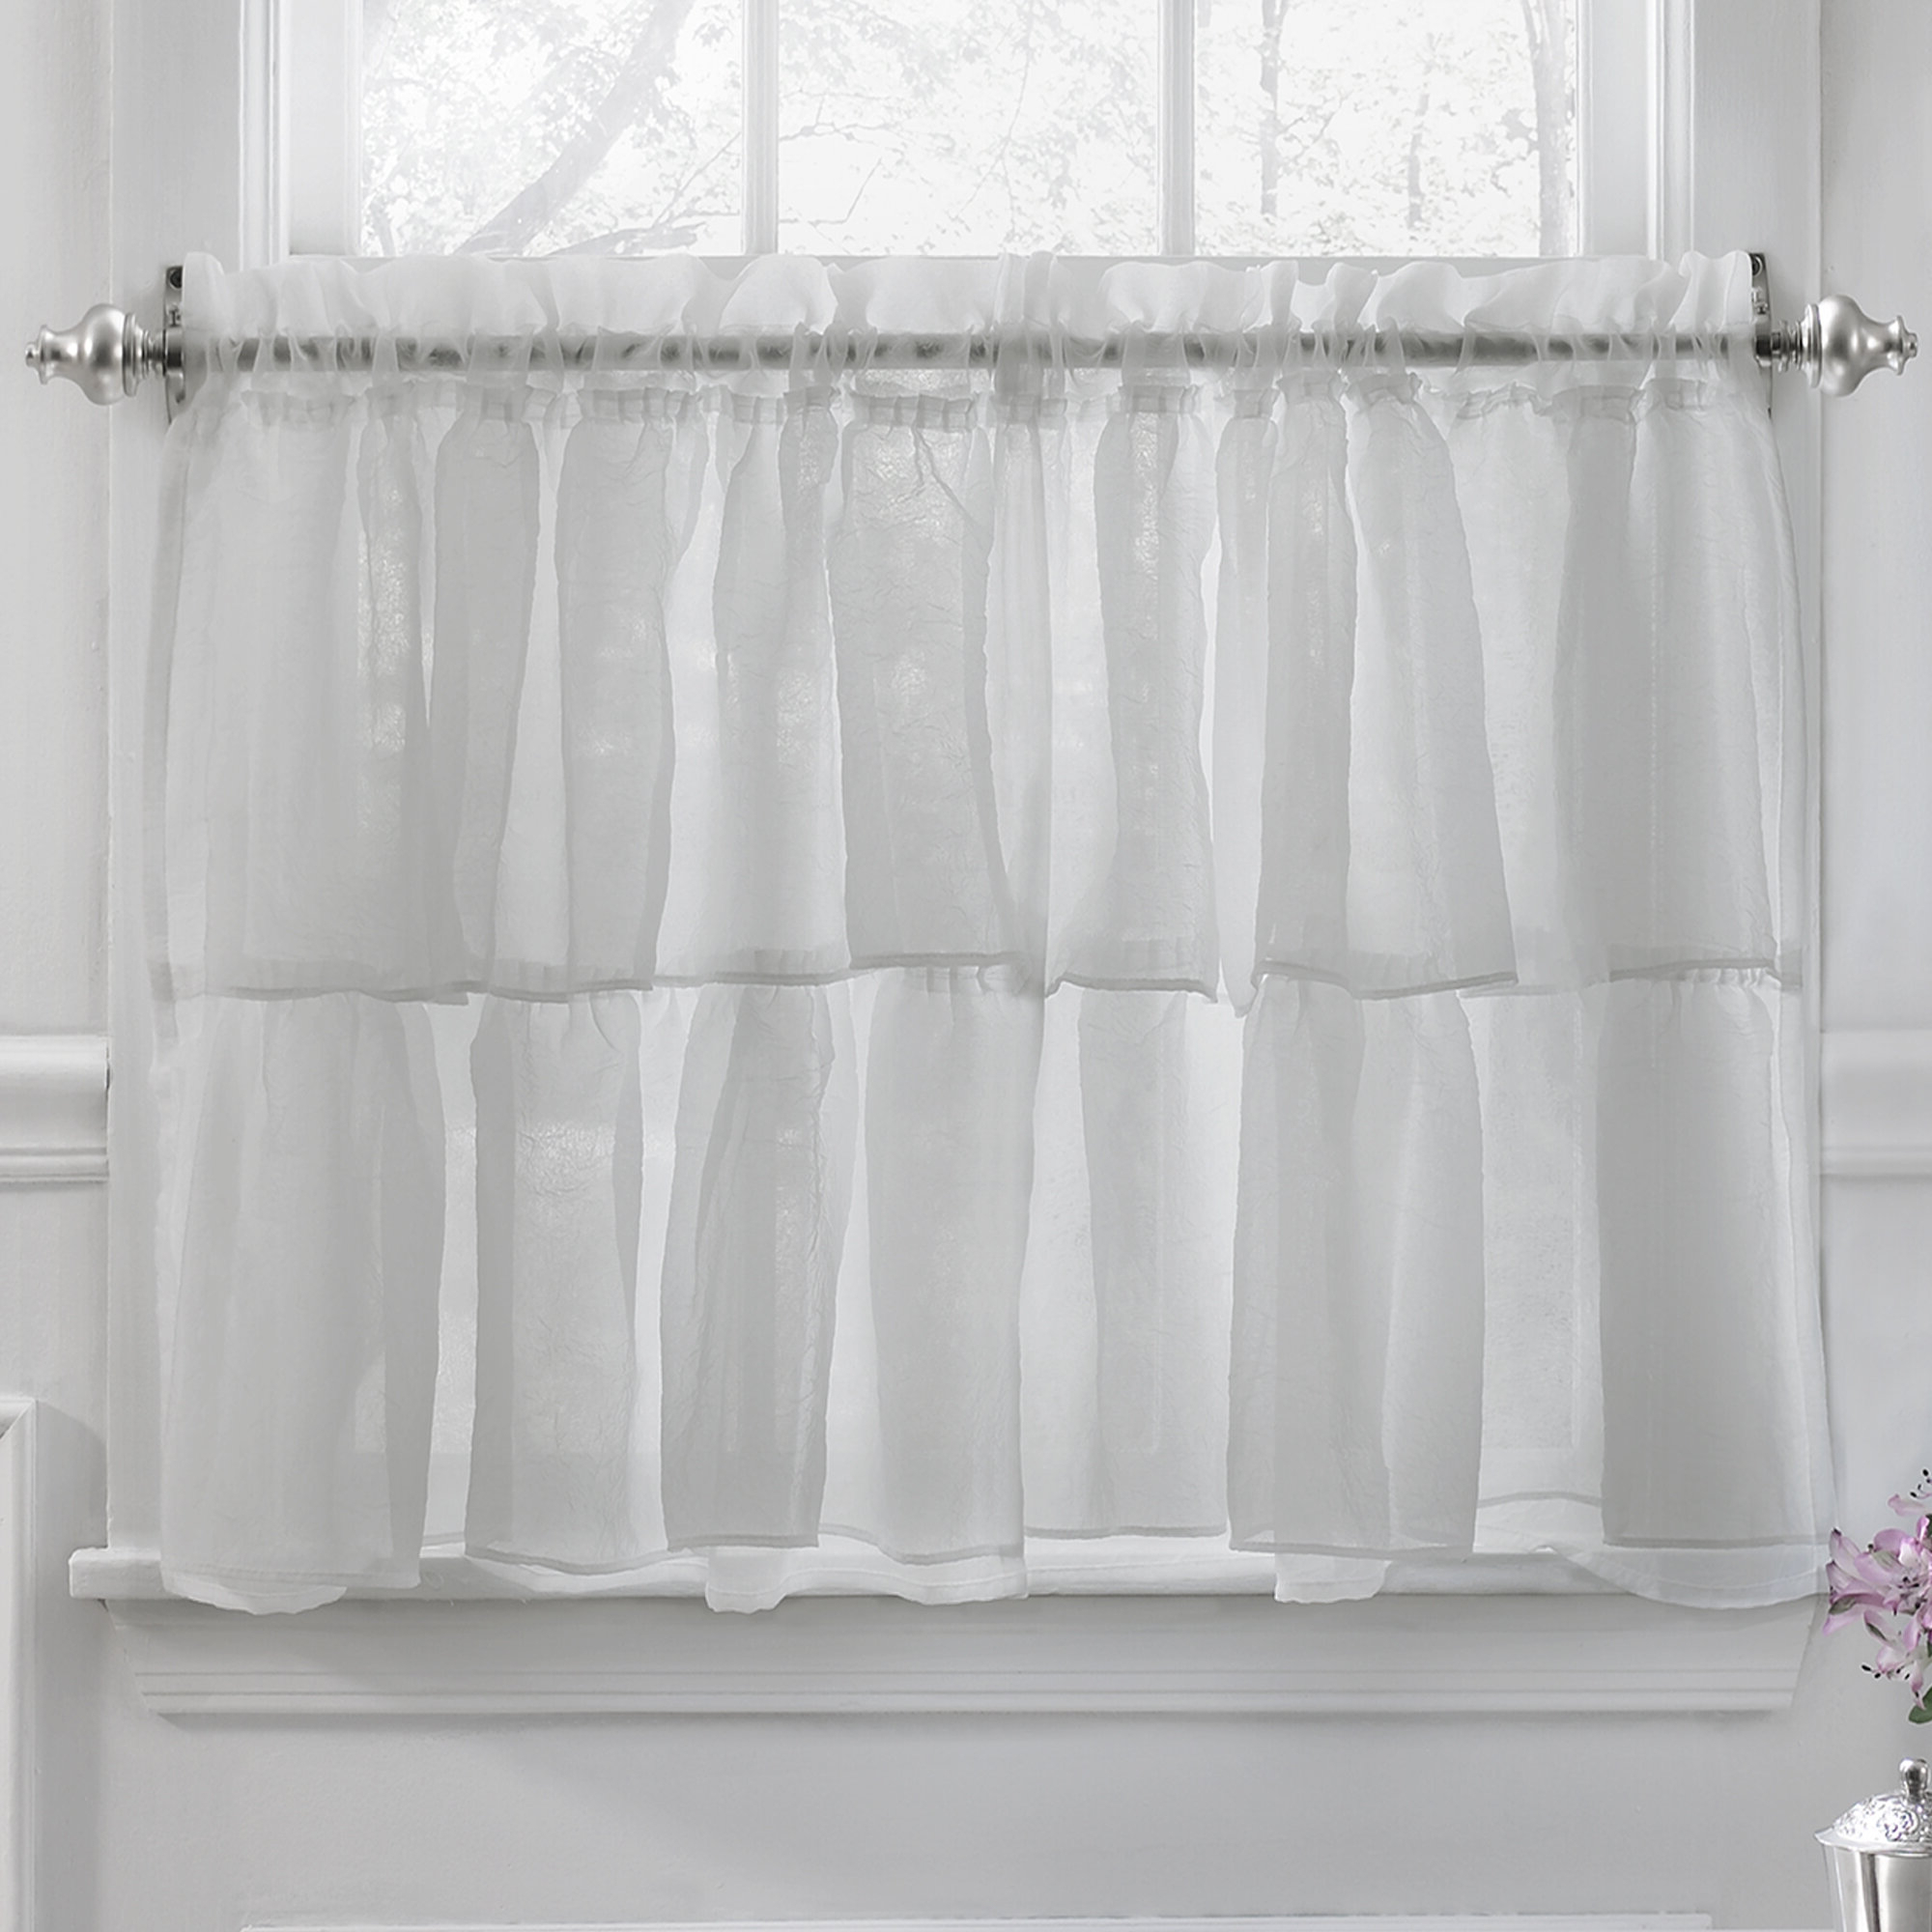 Elegant Crushed Voile Ruffle Kitchen Window Tier Cafe Curtain Throughout 2020 Classic Black And White Curtain Tiers (View 10 of 20)